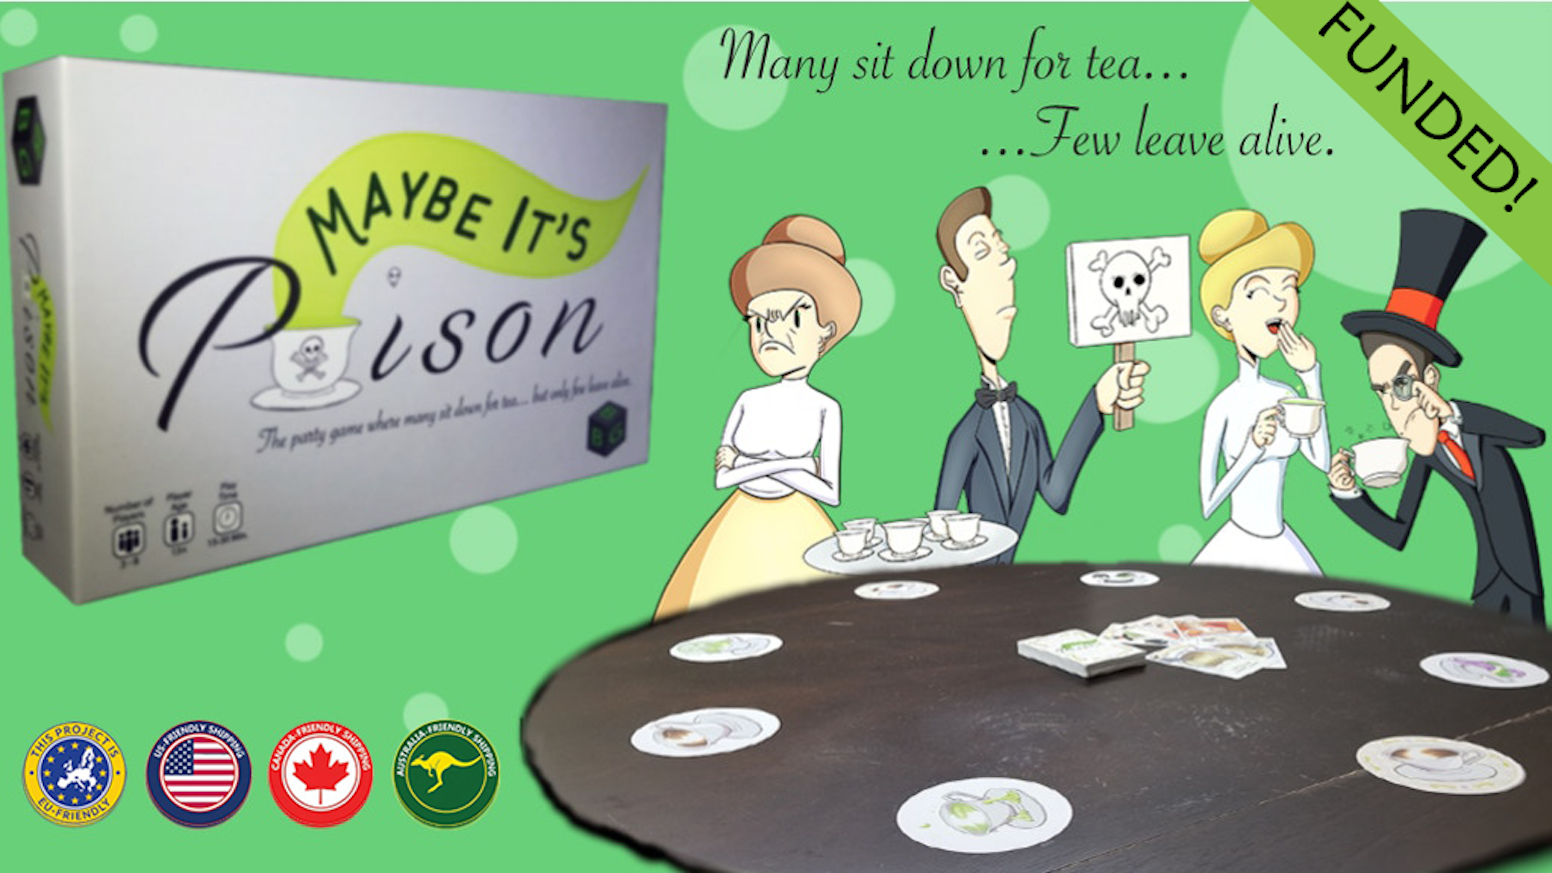 Several guest sit down for tea, but only a few leave alive. Discover the delicious tea and call Cheers! and leave the rest...Poisoned!